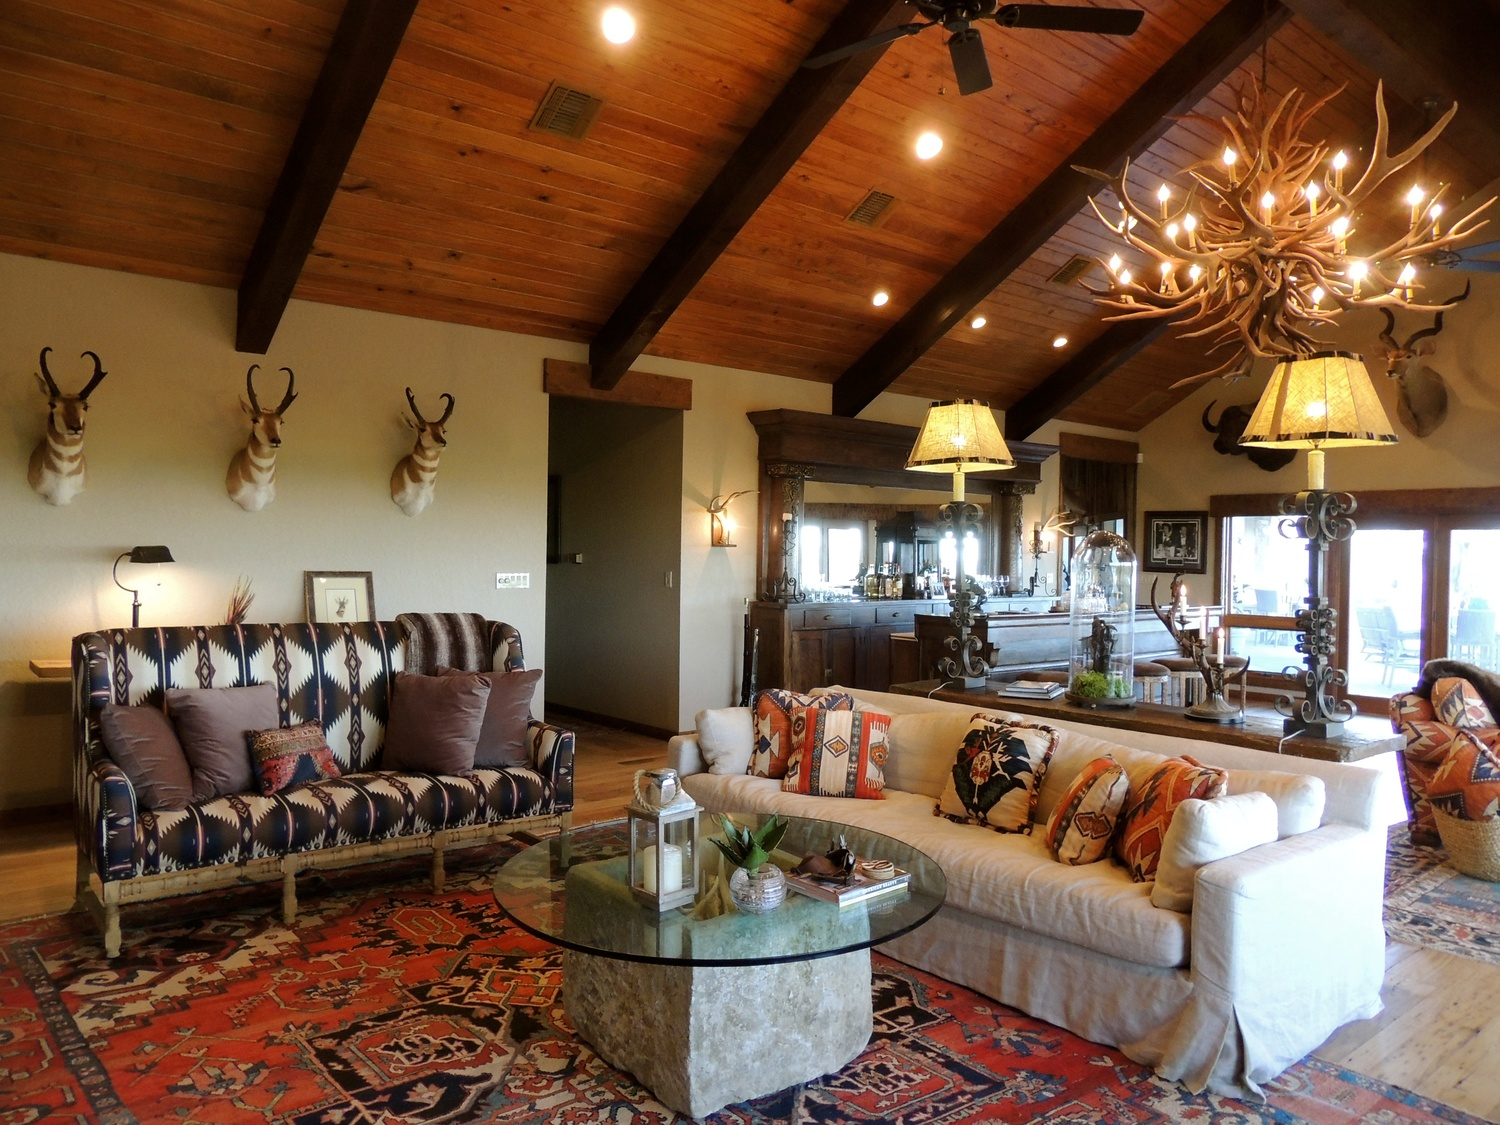 Trent-Hultgren-Interior-Design-Texas-Oil-Ranch